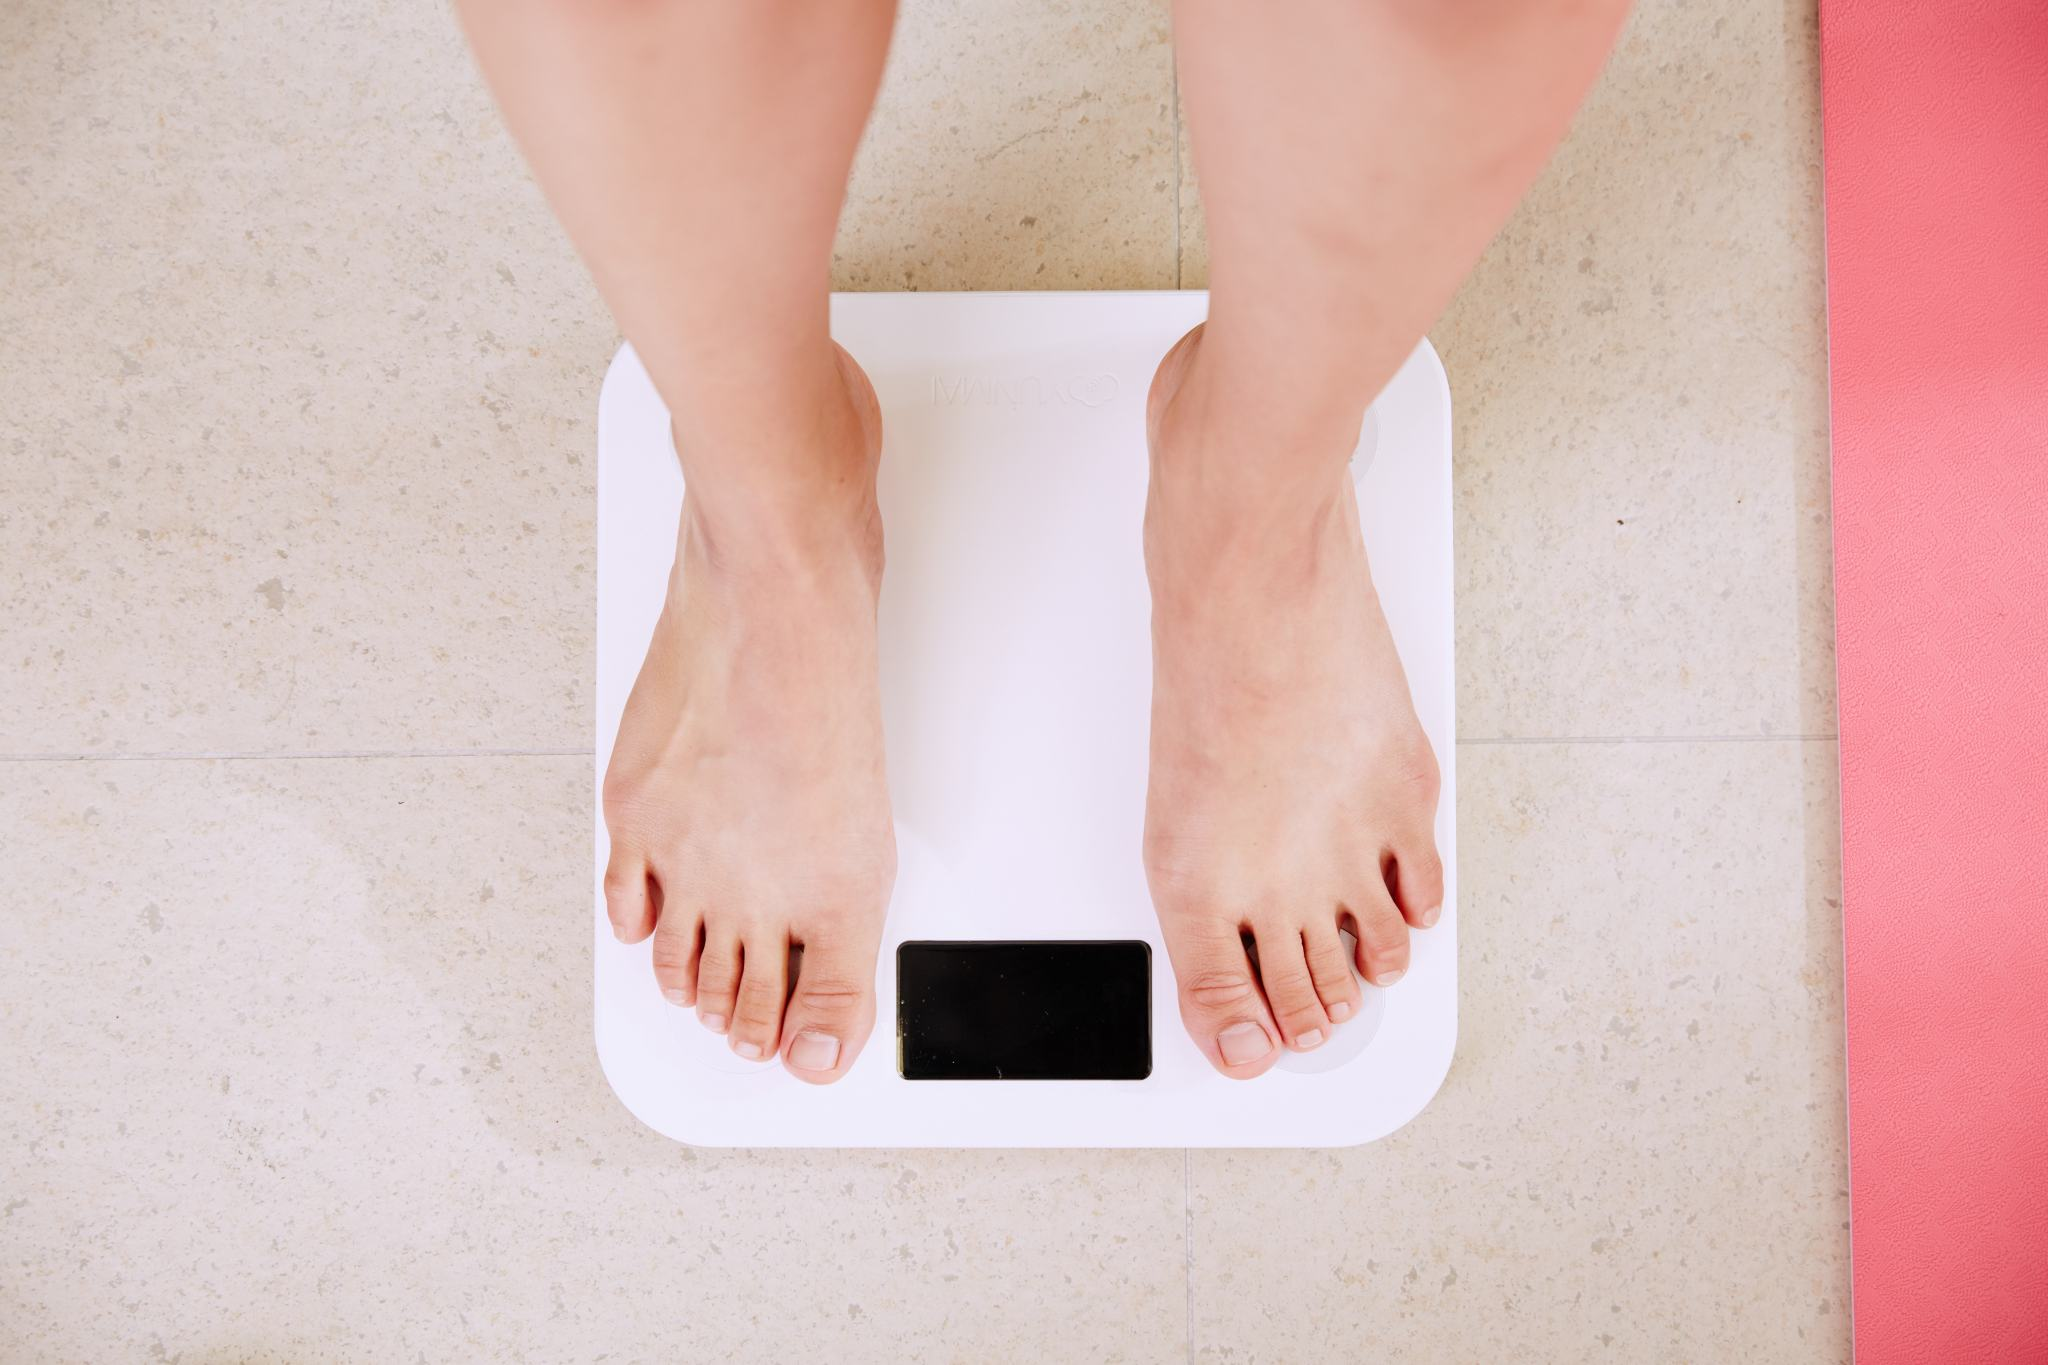 woman standing on scale too stressed to lose weight